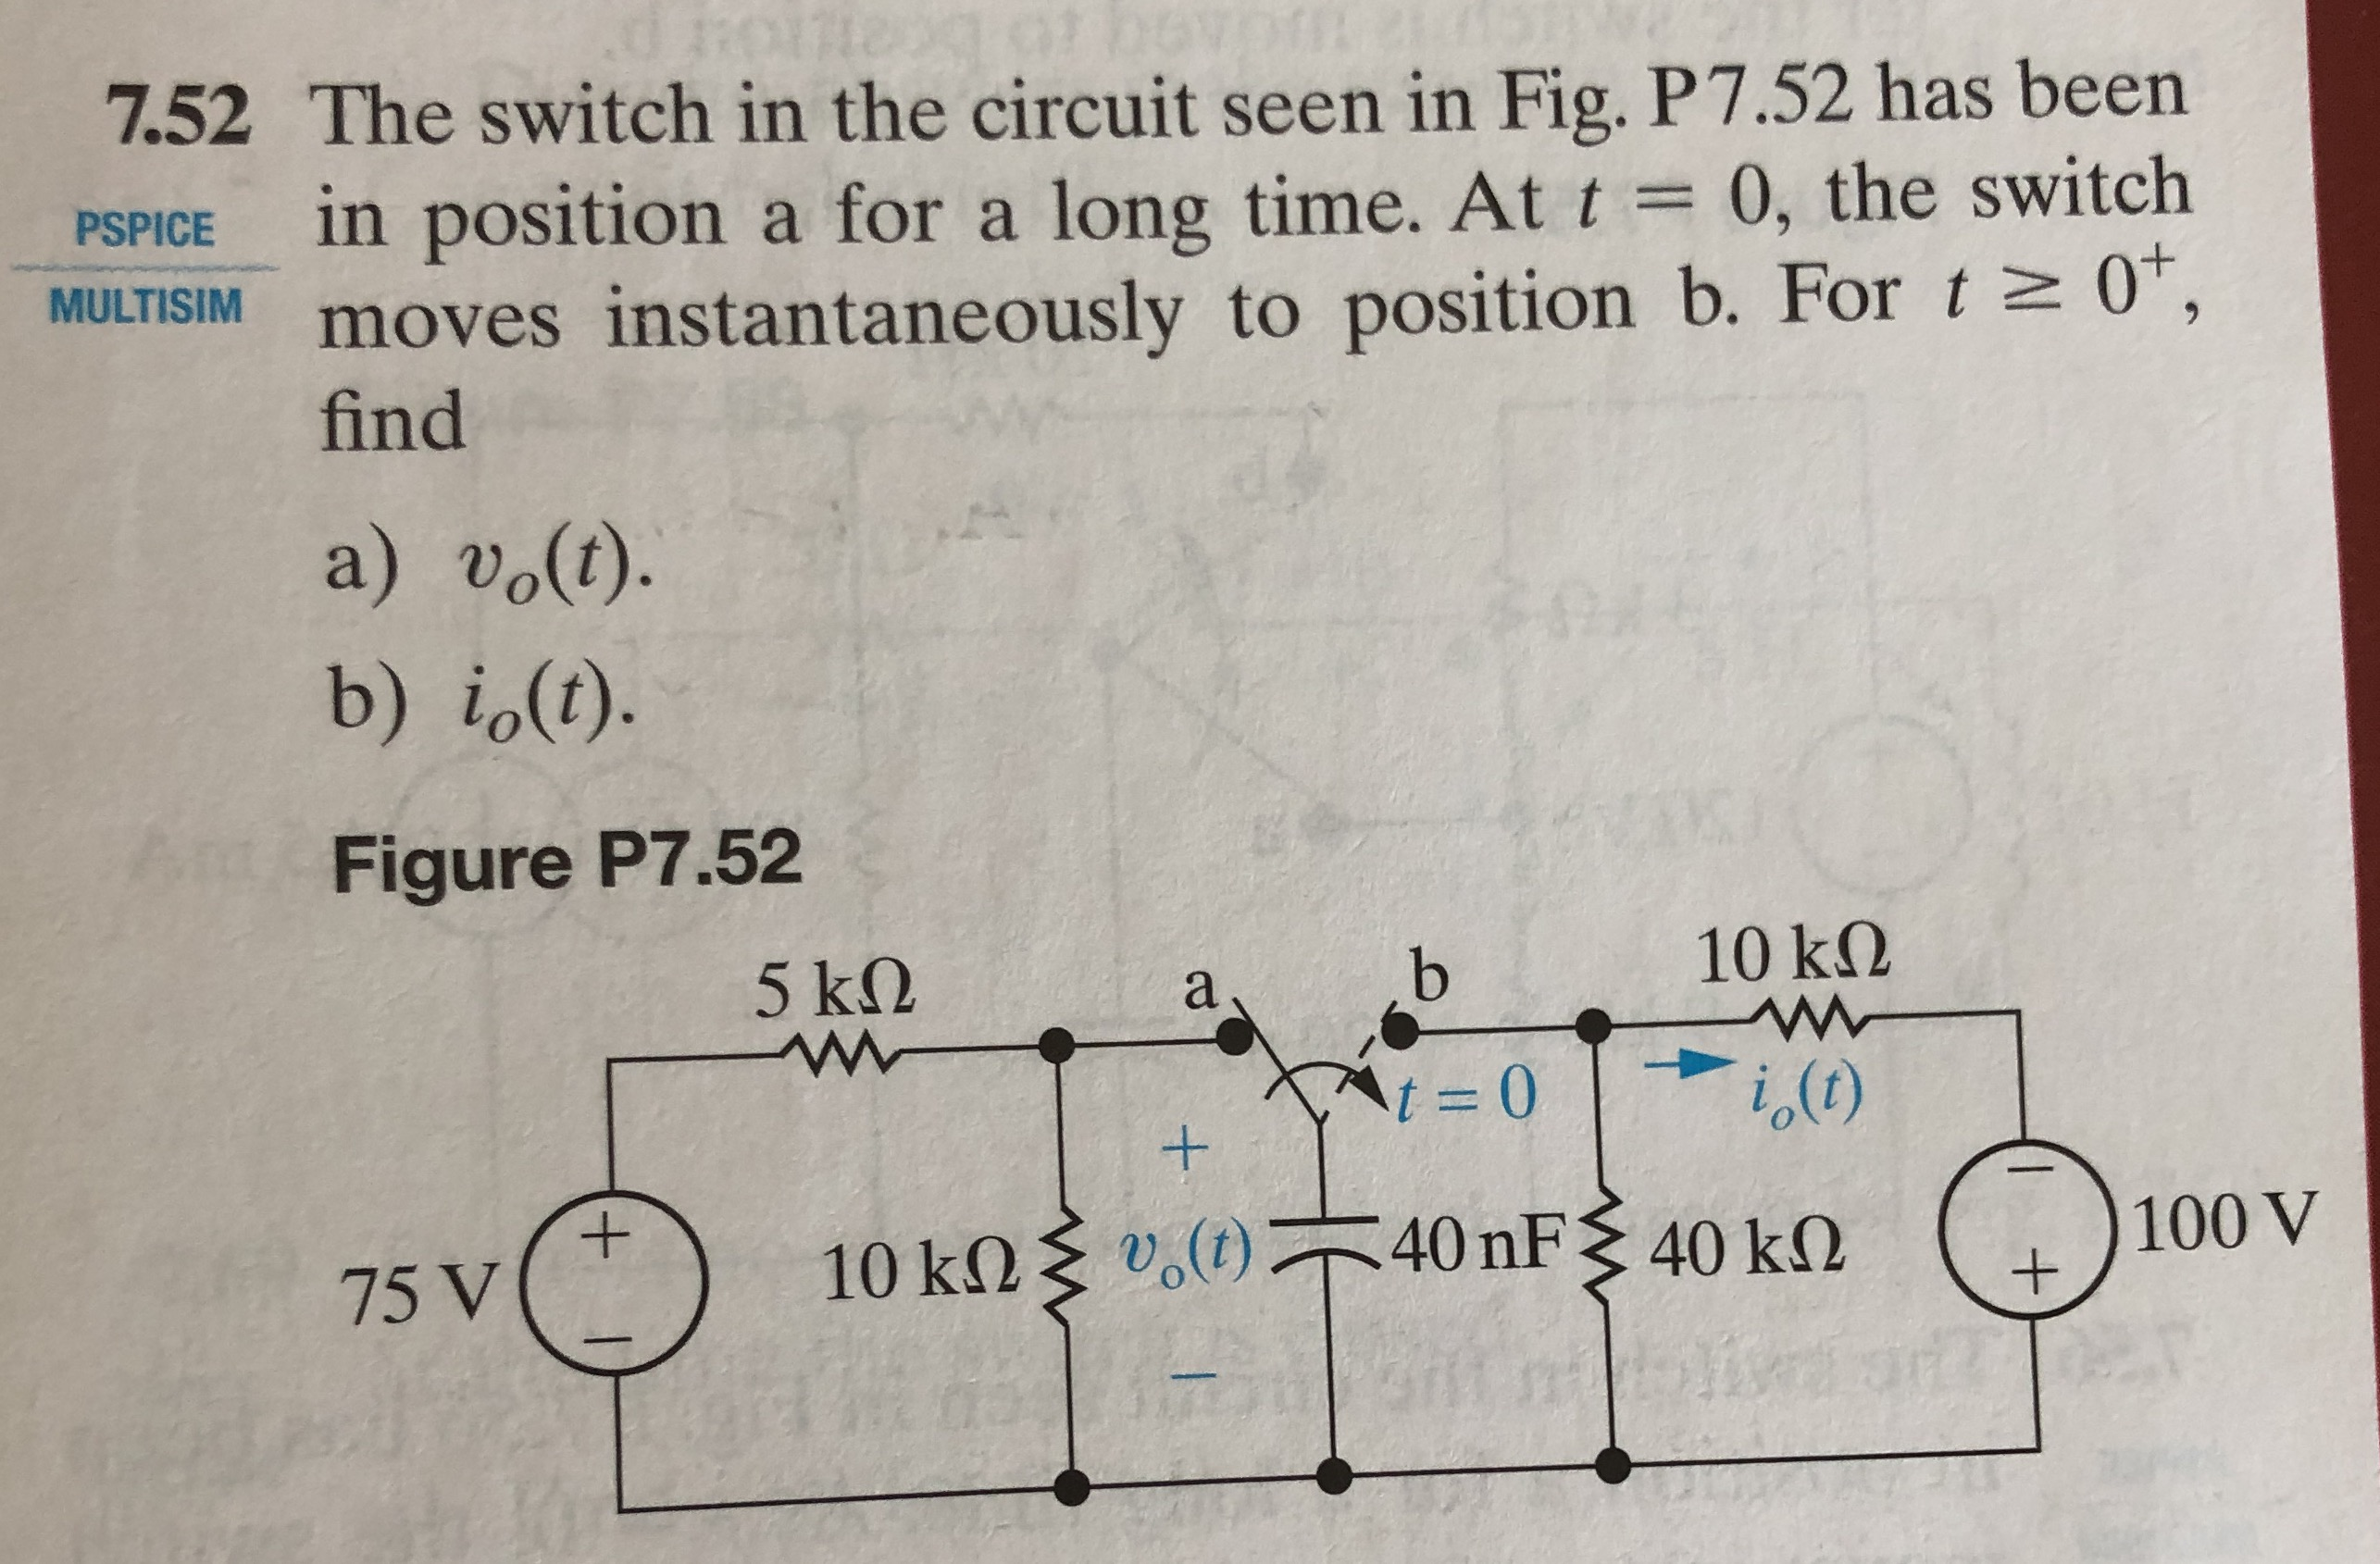 7.52 The switch in the circuit seen in Fig. P7.52 has been PSPICE in position a for a long time. At t0, the switch MULTISIM moves instantaneously to position b. For 0, find a) vo(t). b) io1). Figure P7.52 10 kΩ 40 nF 10() 40 kΩ 10 k() 75 V